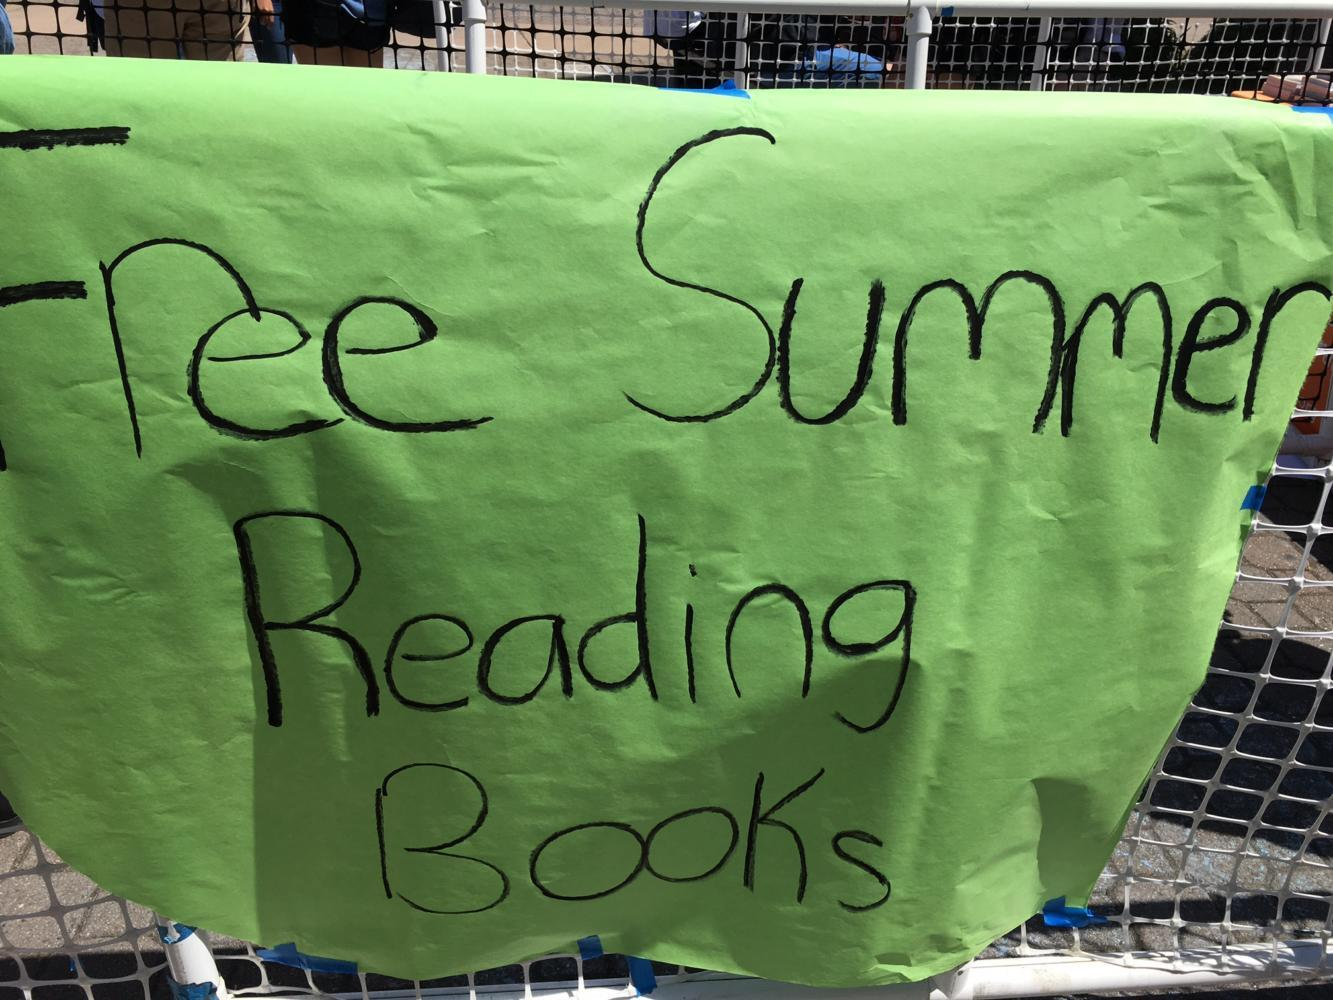 A+sign+is+taped+outside+the+fences+of+the+line%2C+informing+students+who+are+walking+by+about+the+free+sumer+reading+books.